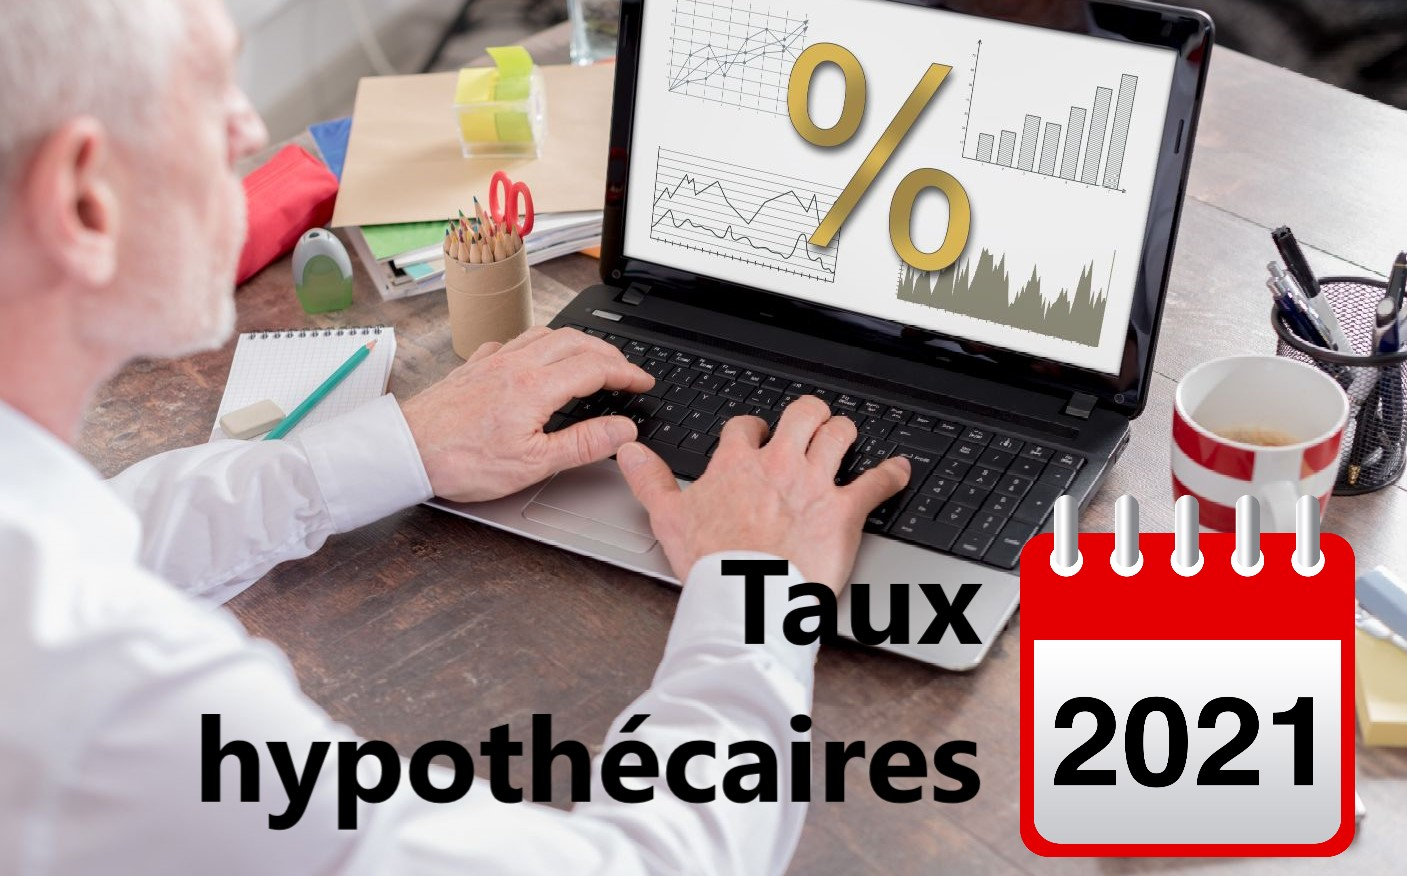 taux hypothecaires 2021